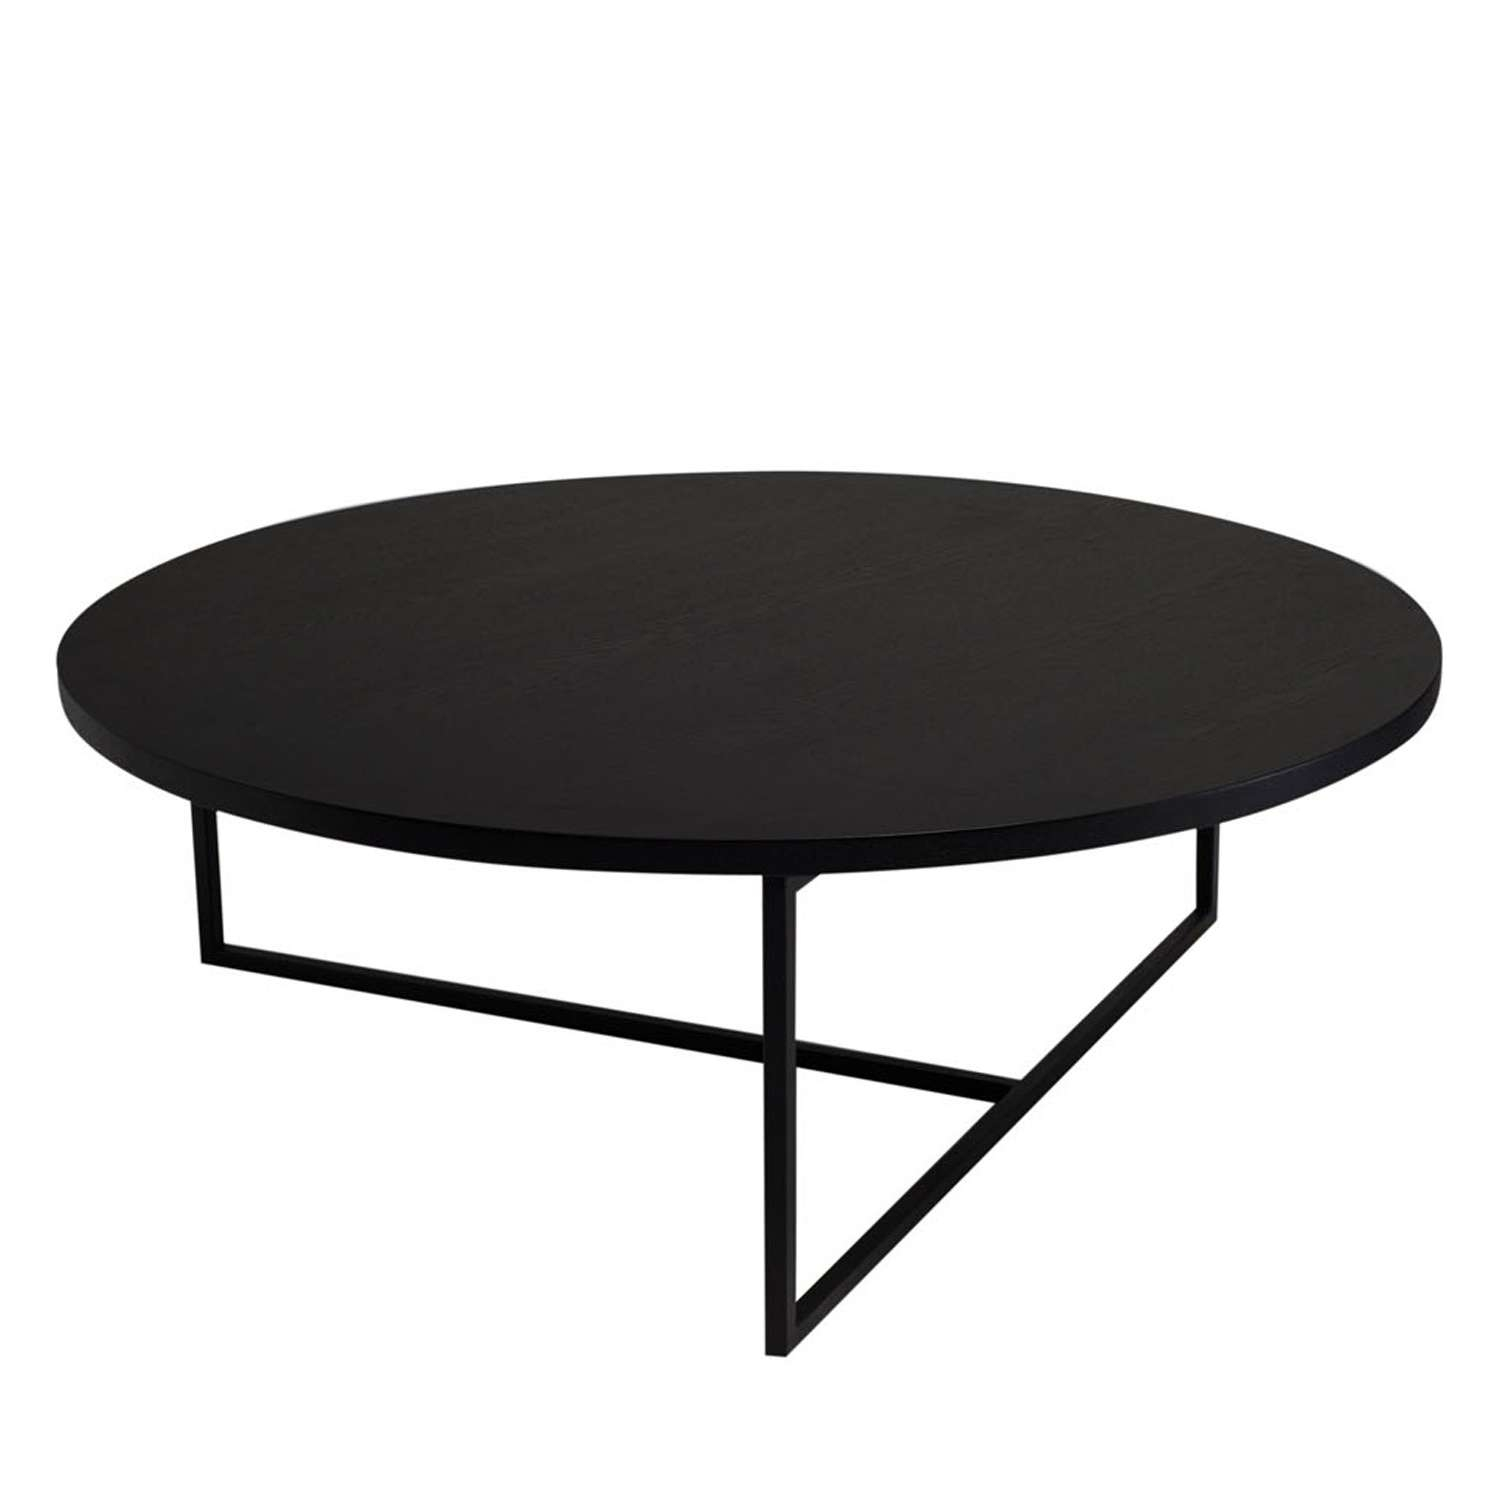 Coffee Tables Ideas: Best Black Round Coffee Table Sets Small Within Popular High Quality Coffee Tables (View 18 of 20)